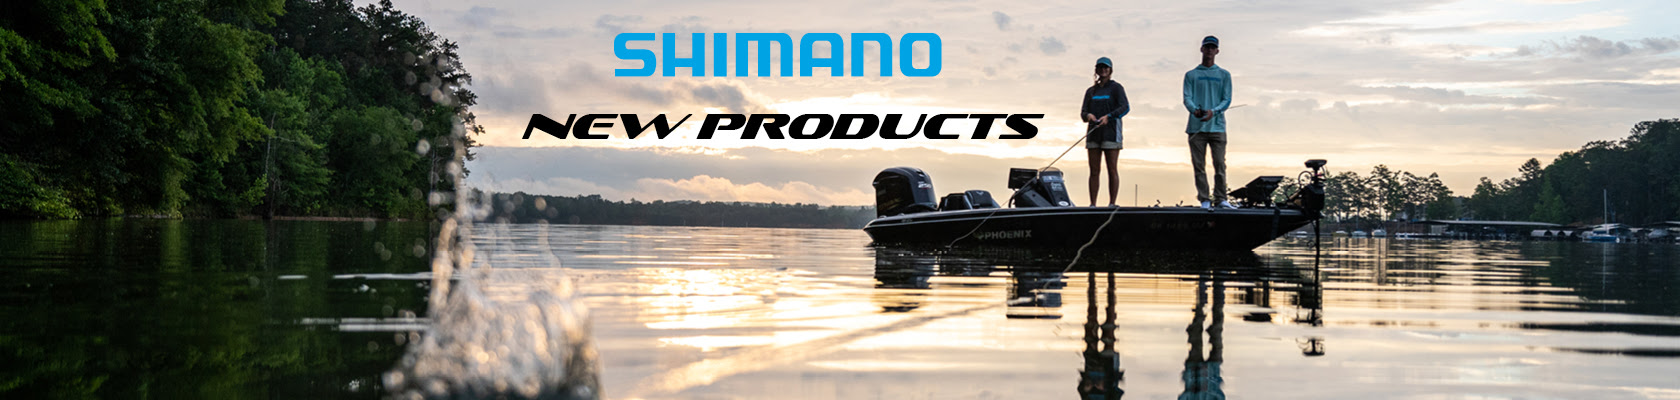 Shimano New Products